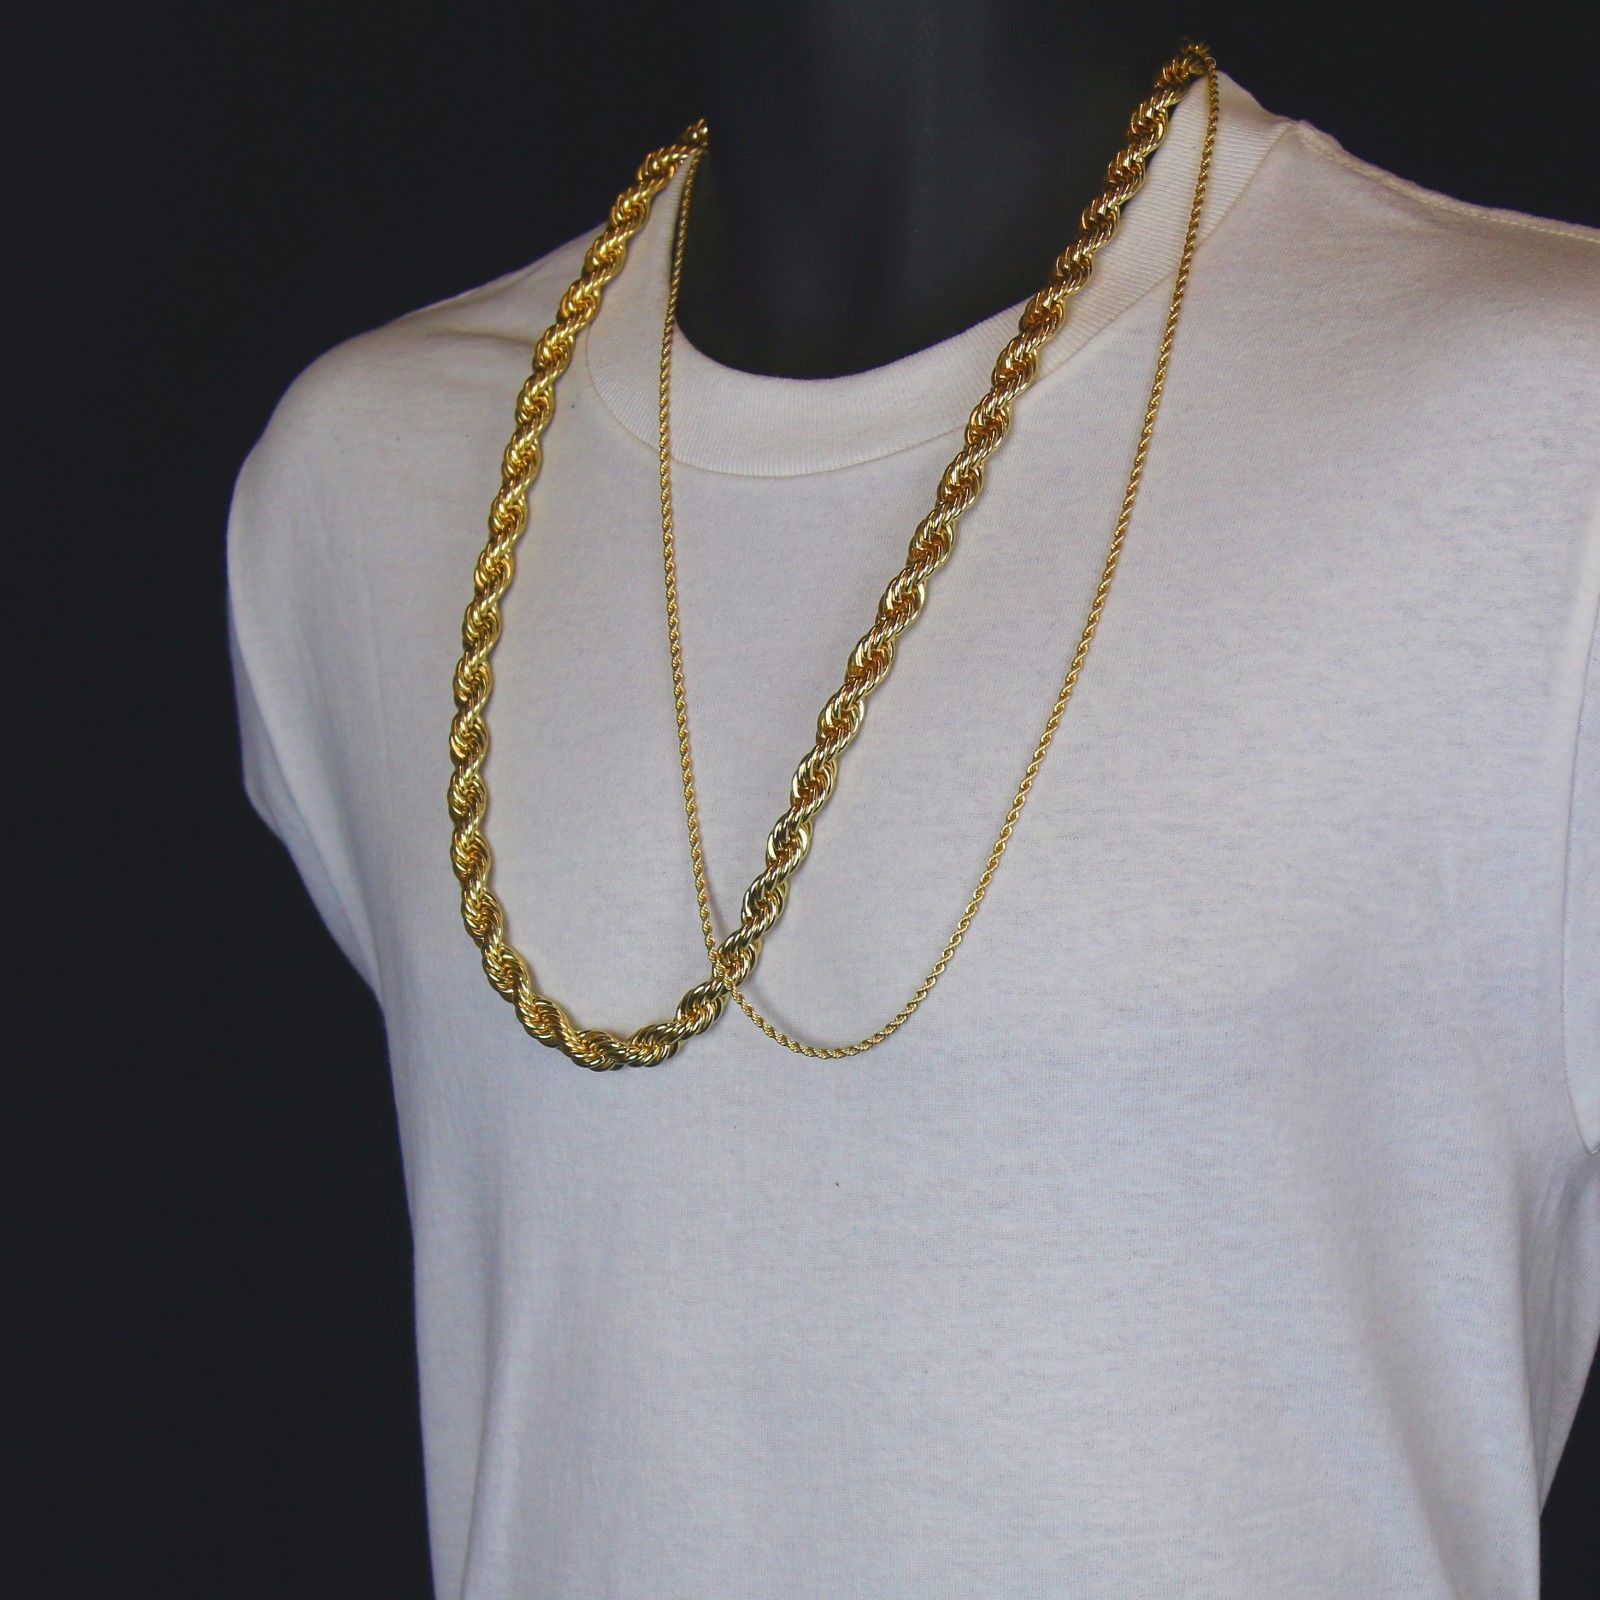 Men S 24k Gold Plated 10mm 2 5mm 30 Thick Rope Chain Hip Hop Style Set Rope Chain Hip Hop Fashion Chain